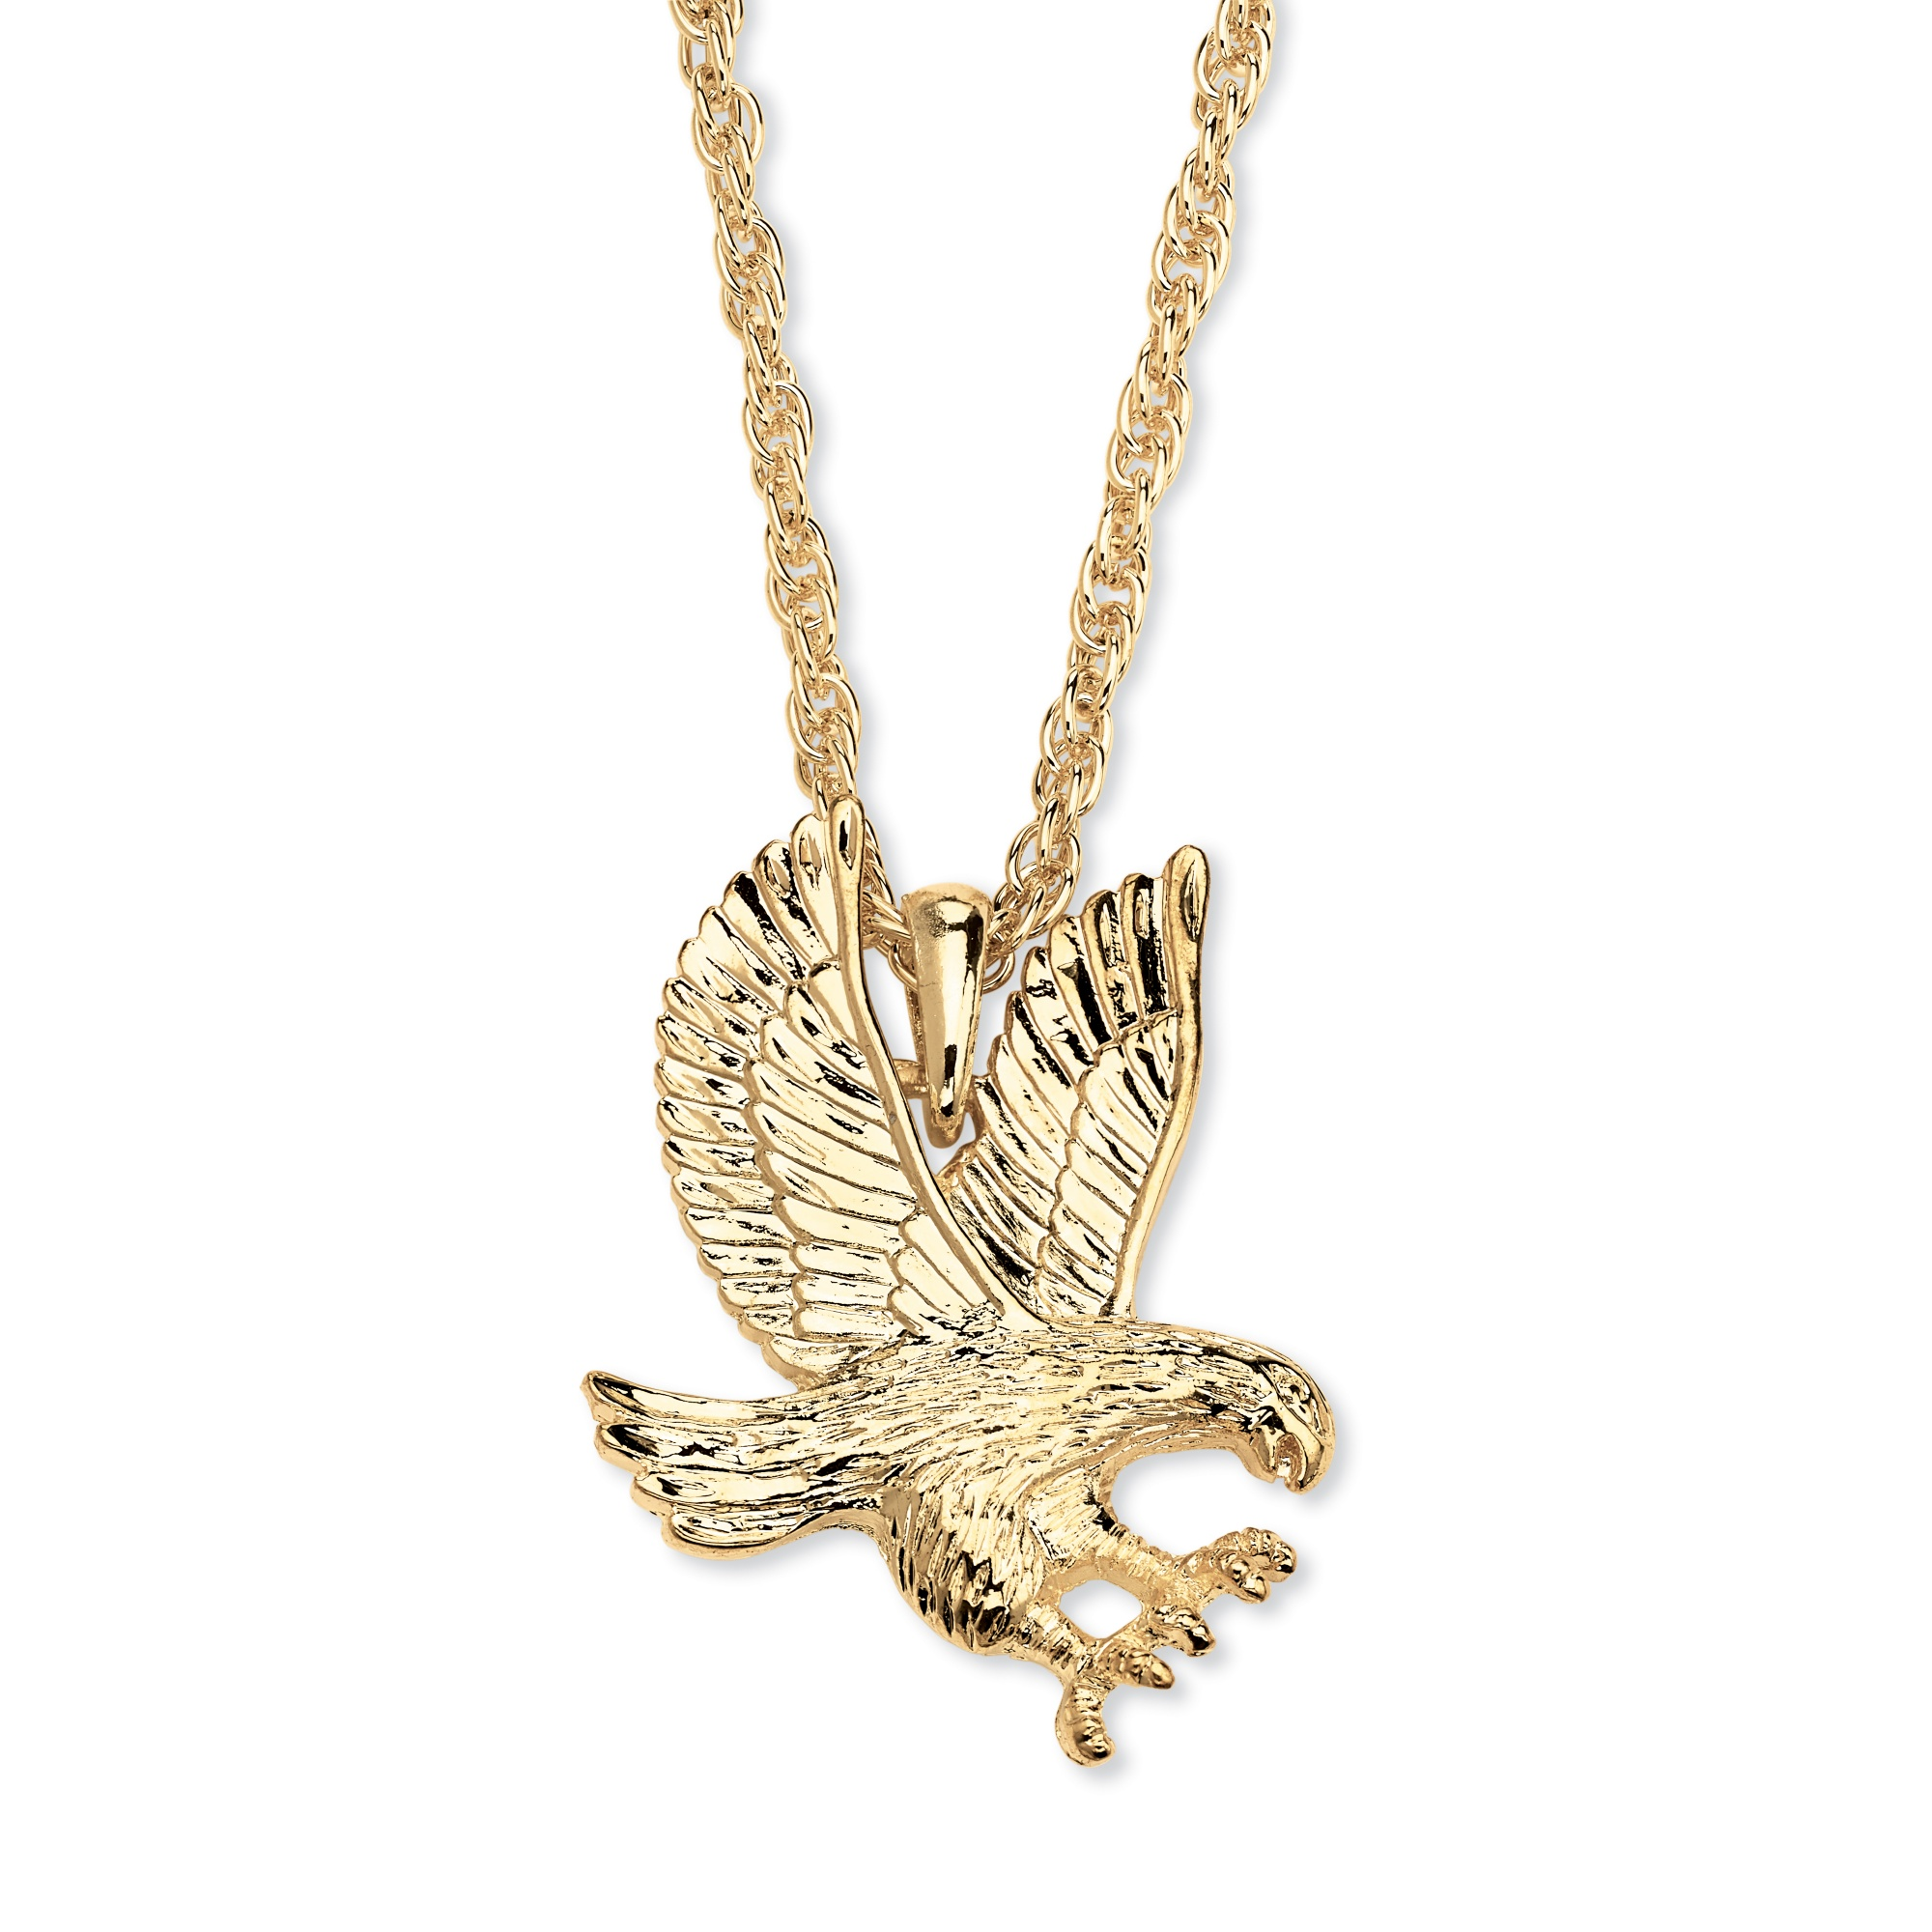 earnest swanson pendant eagle